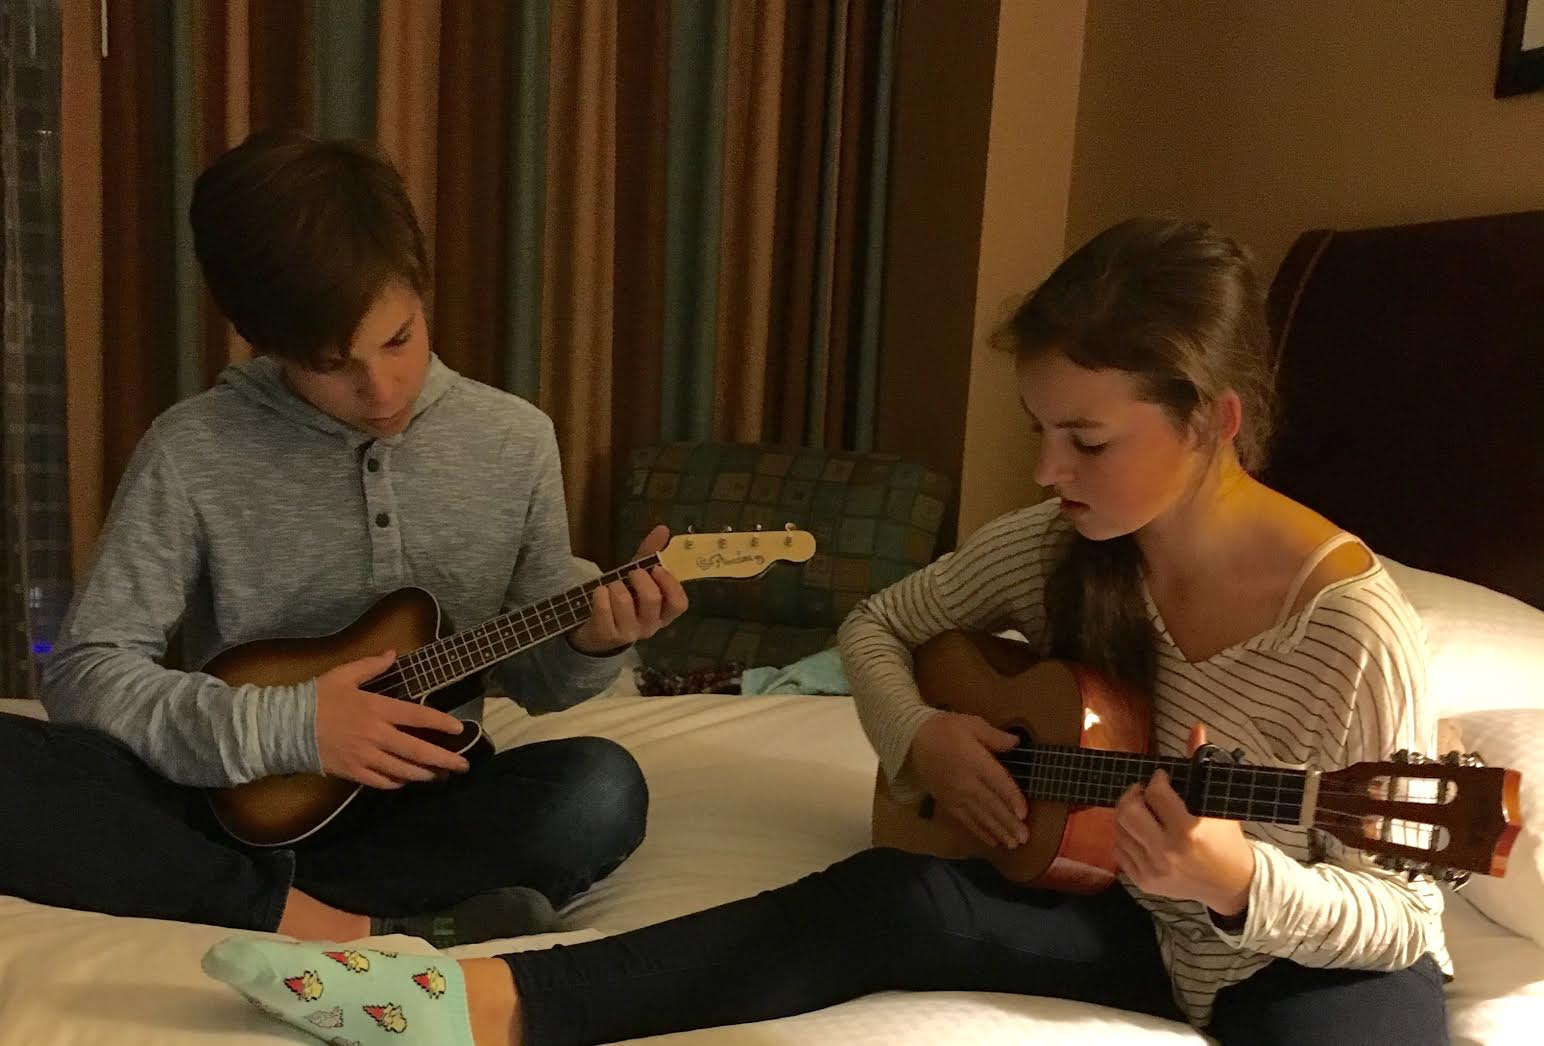 Practicing ukulele in the hotel